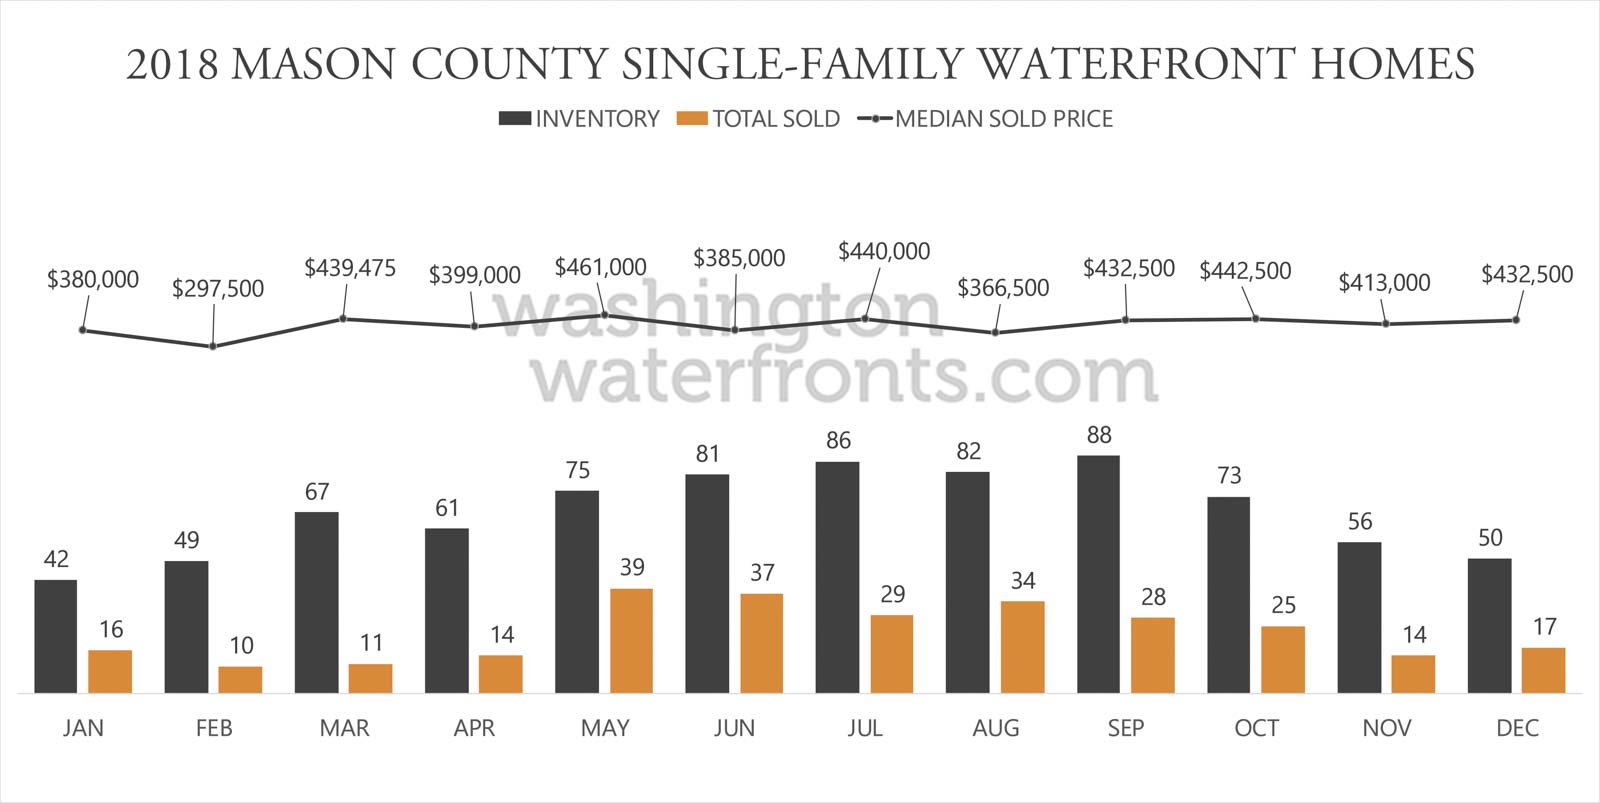 Mason County Waterfront Inventory